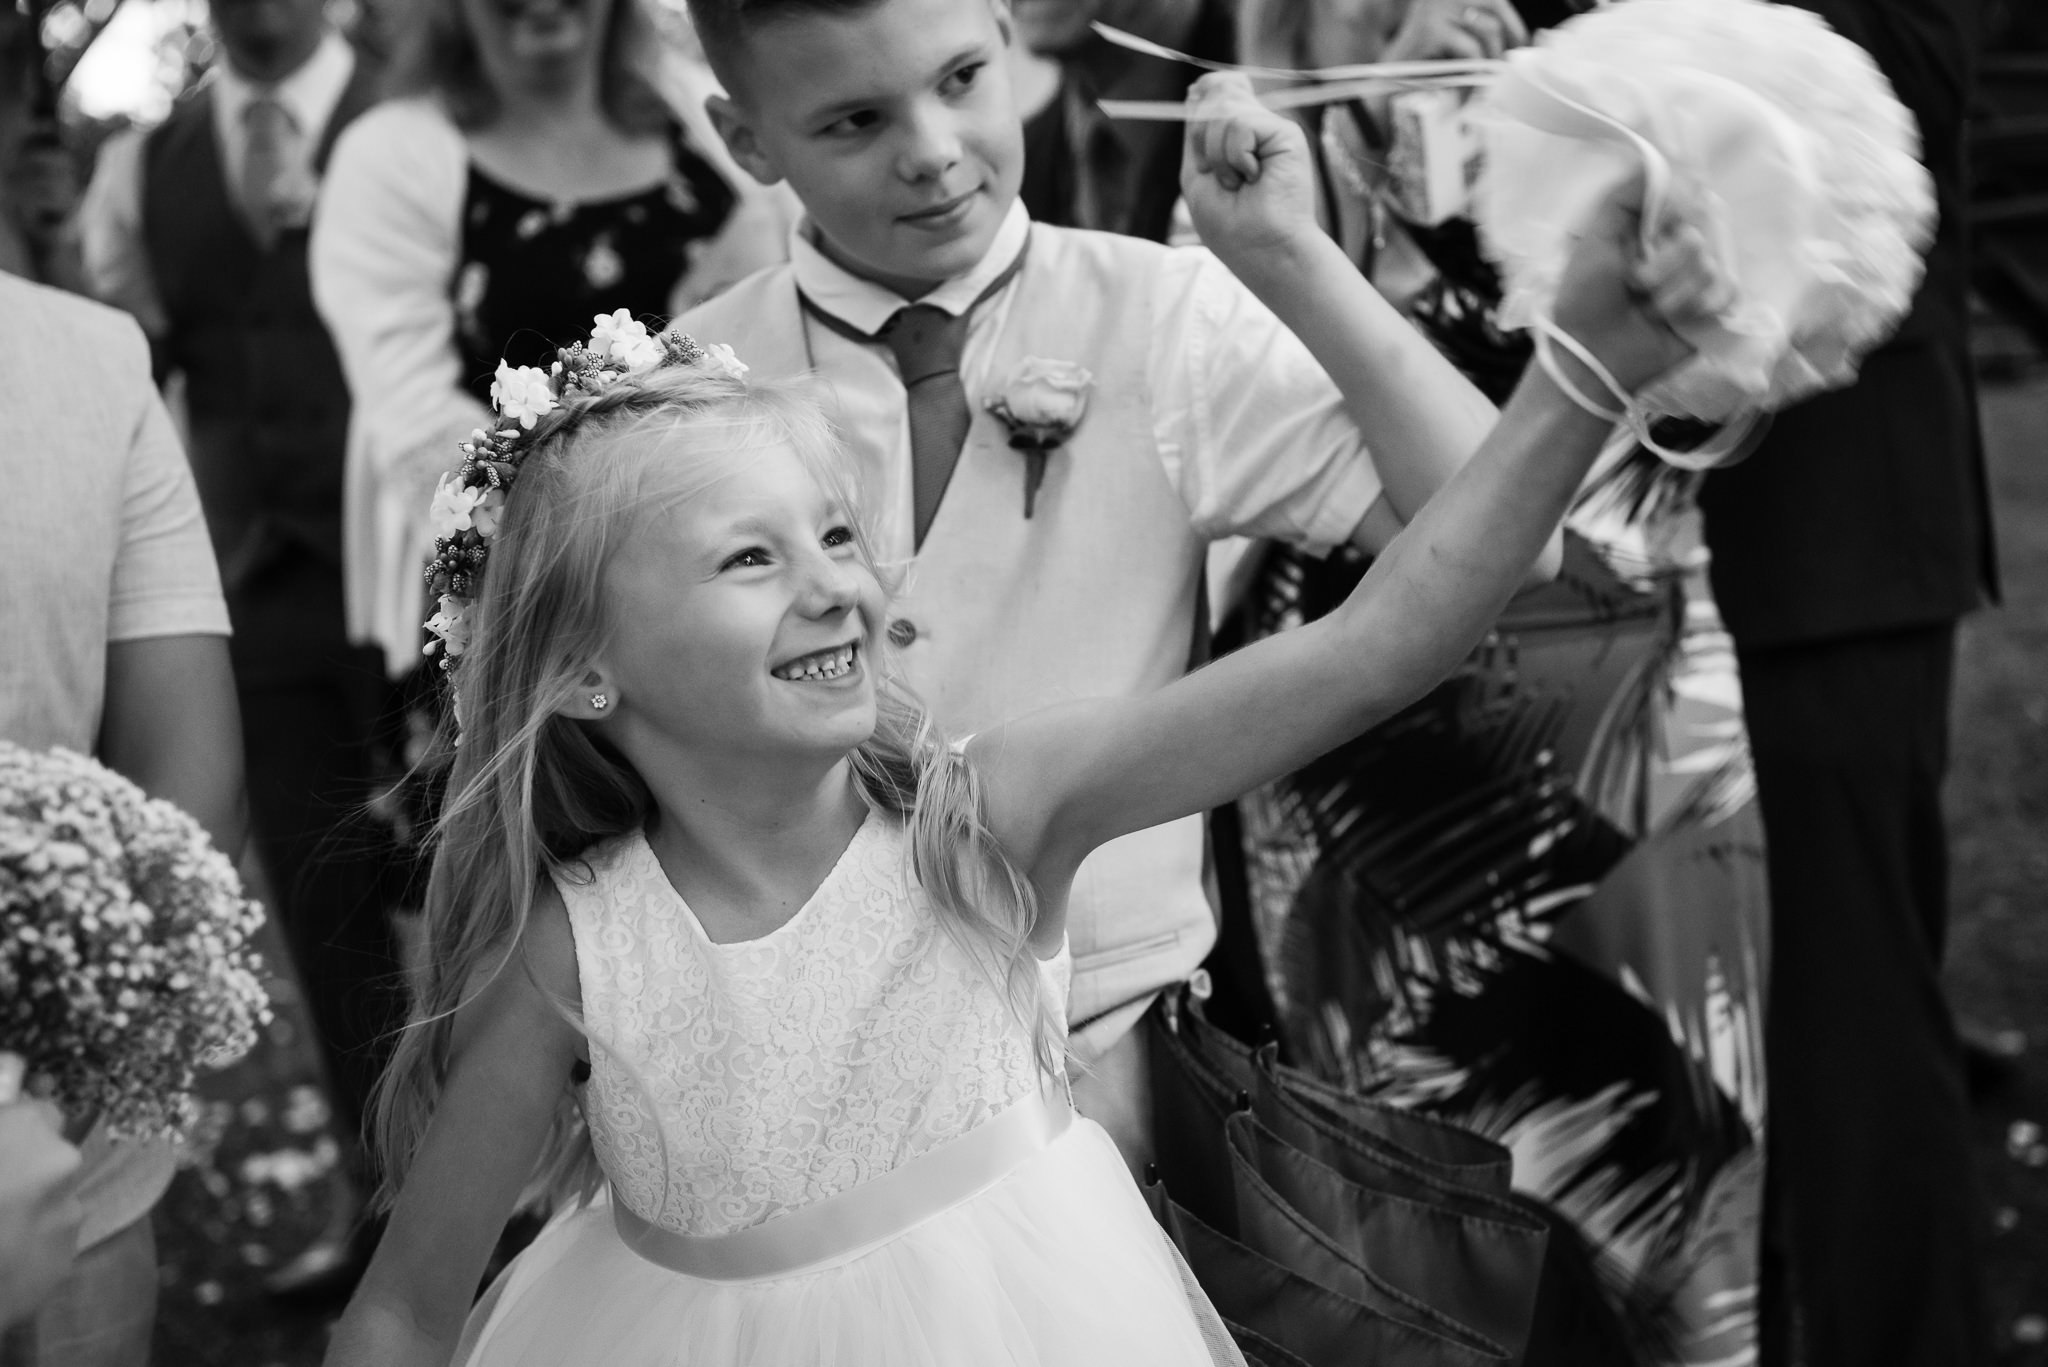 A flower girl throwing confetti